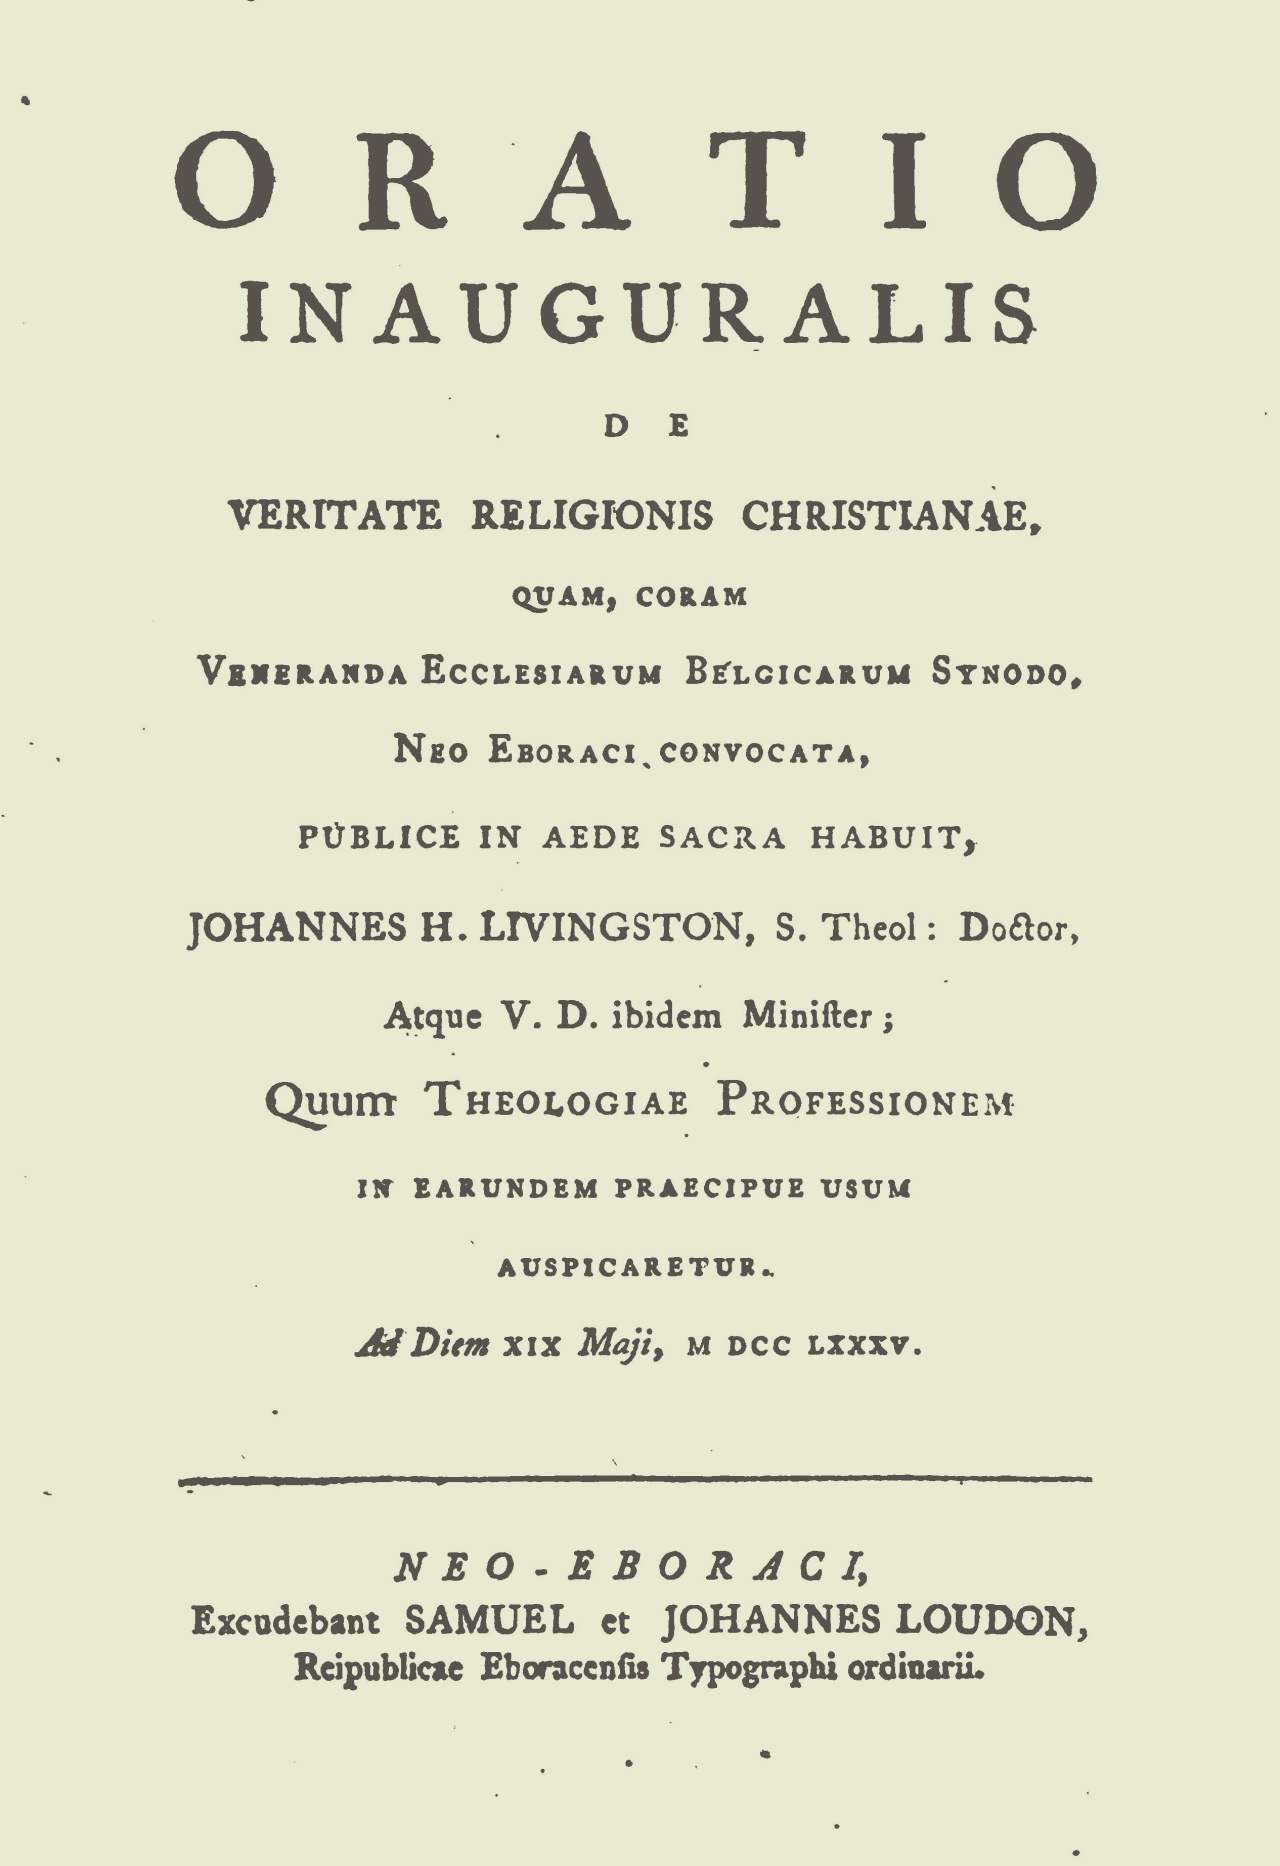 Livingston, John Henry, Inaugural Oration Title Page.jpg